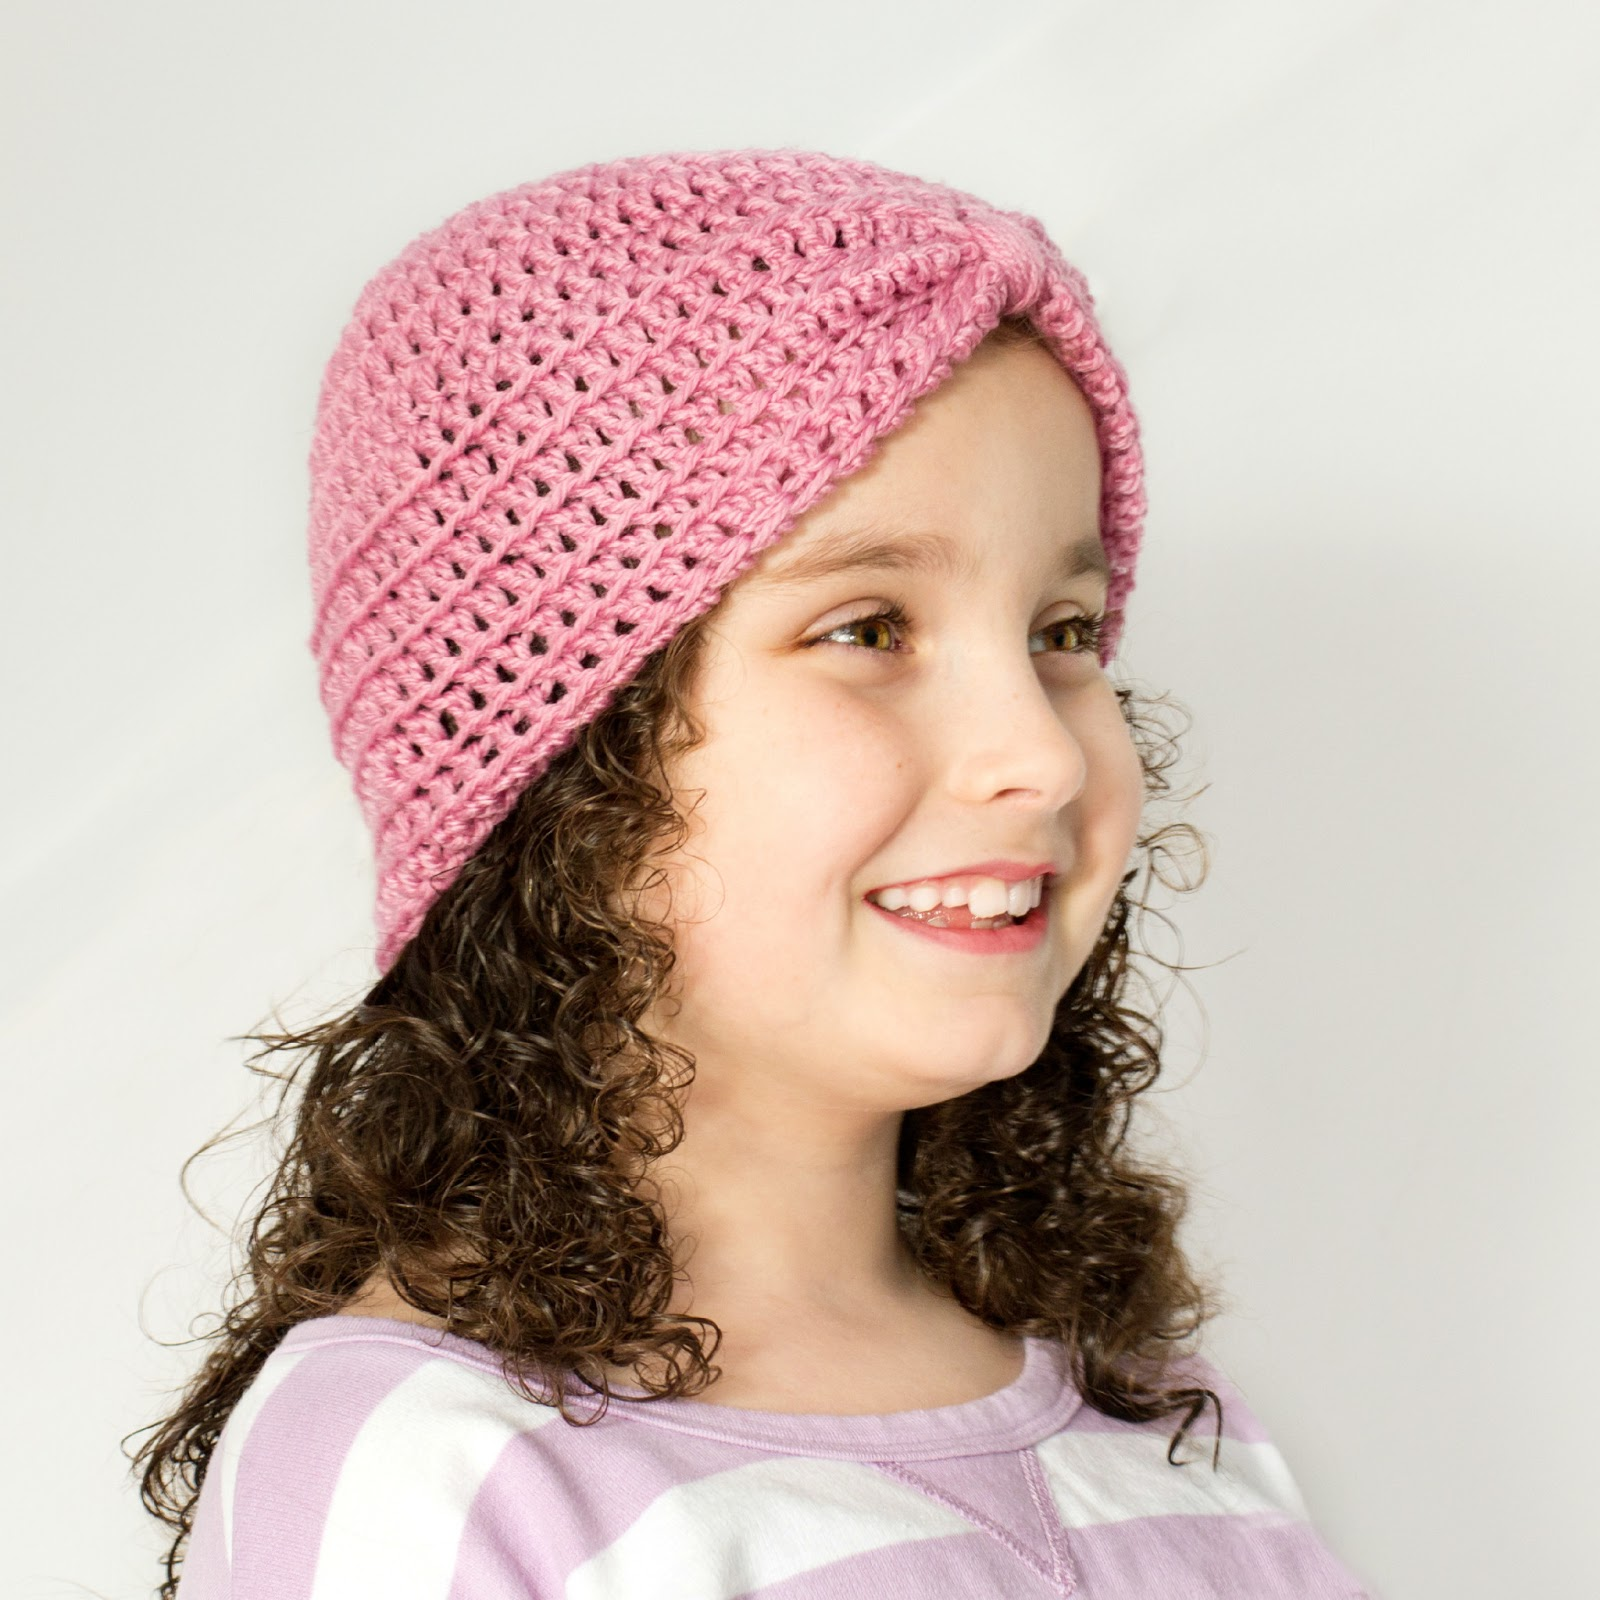 Crochet Pattern Turban Hat : Hopeful Honey Craft, Crochet, Create: Basic Turban ...